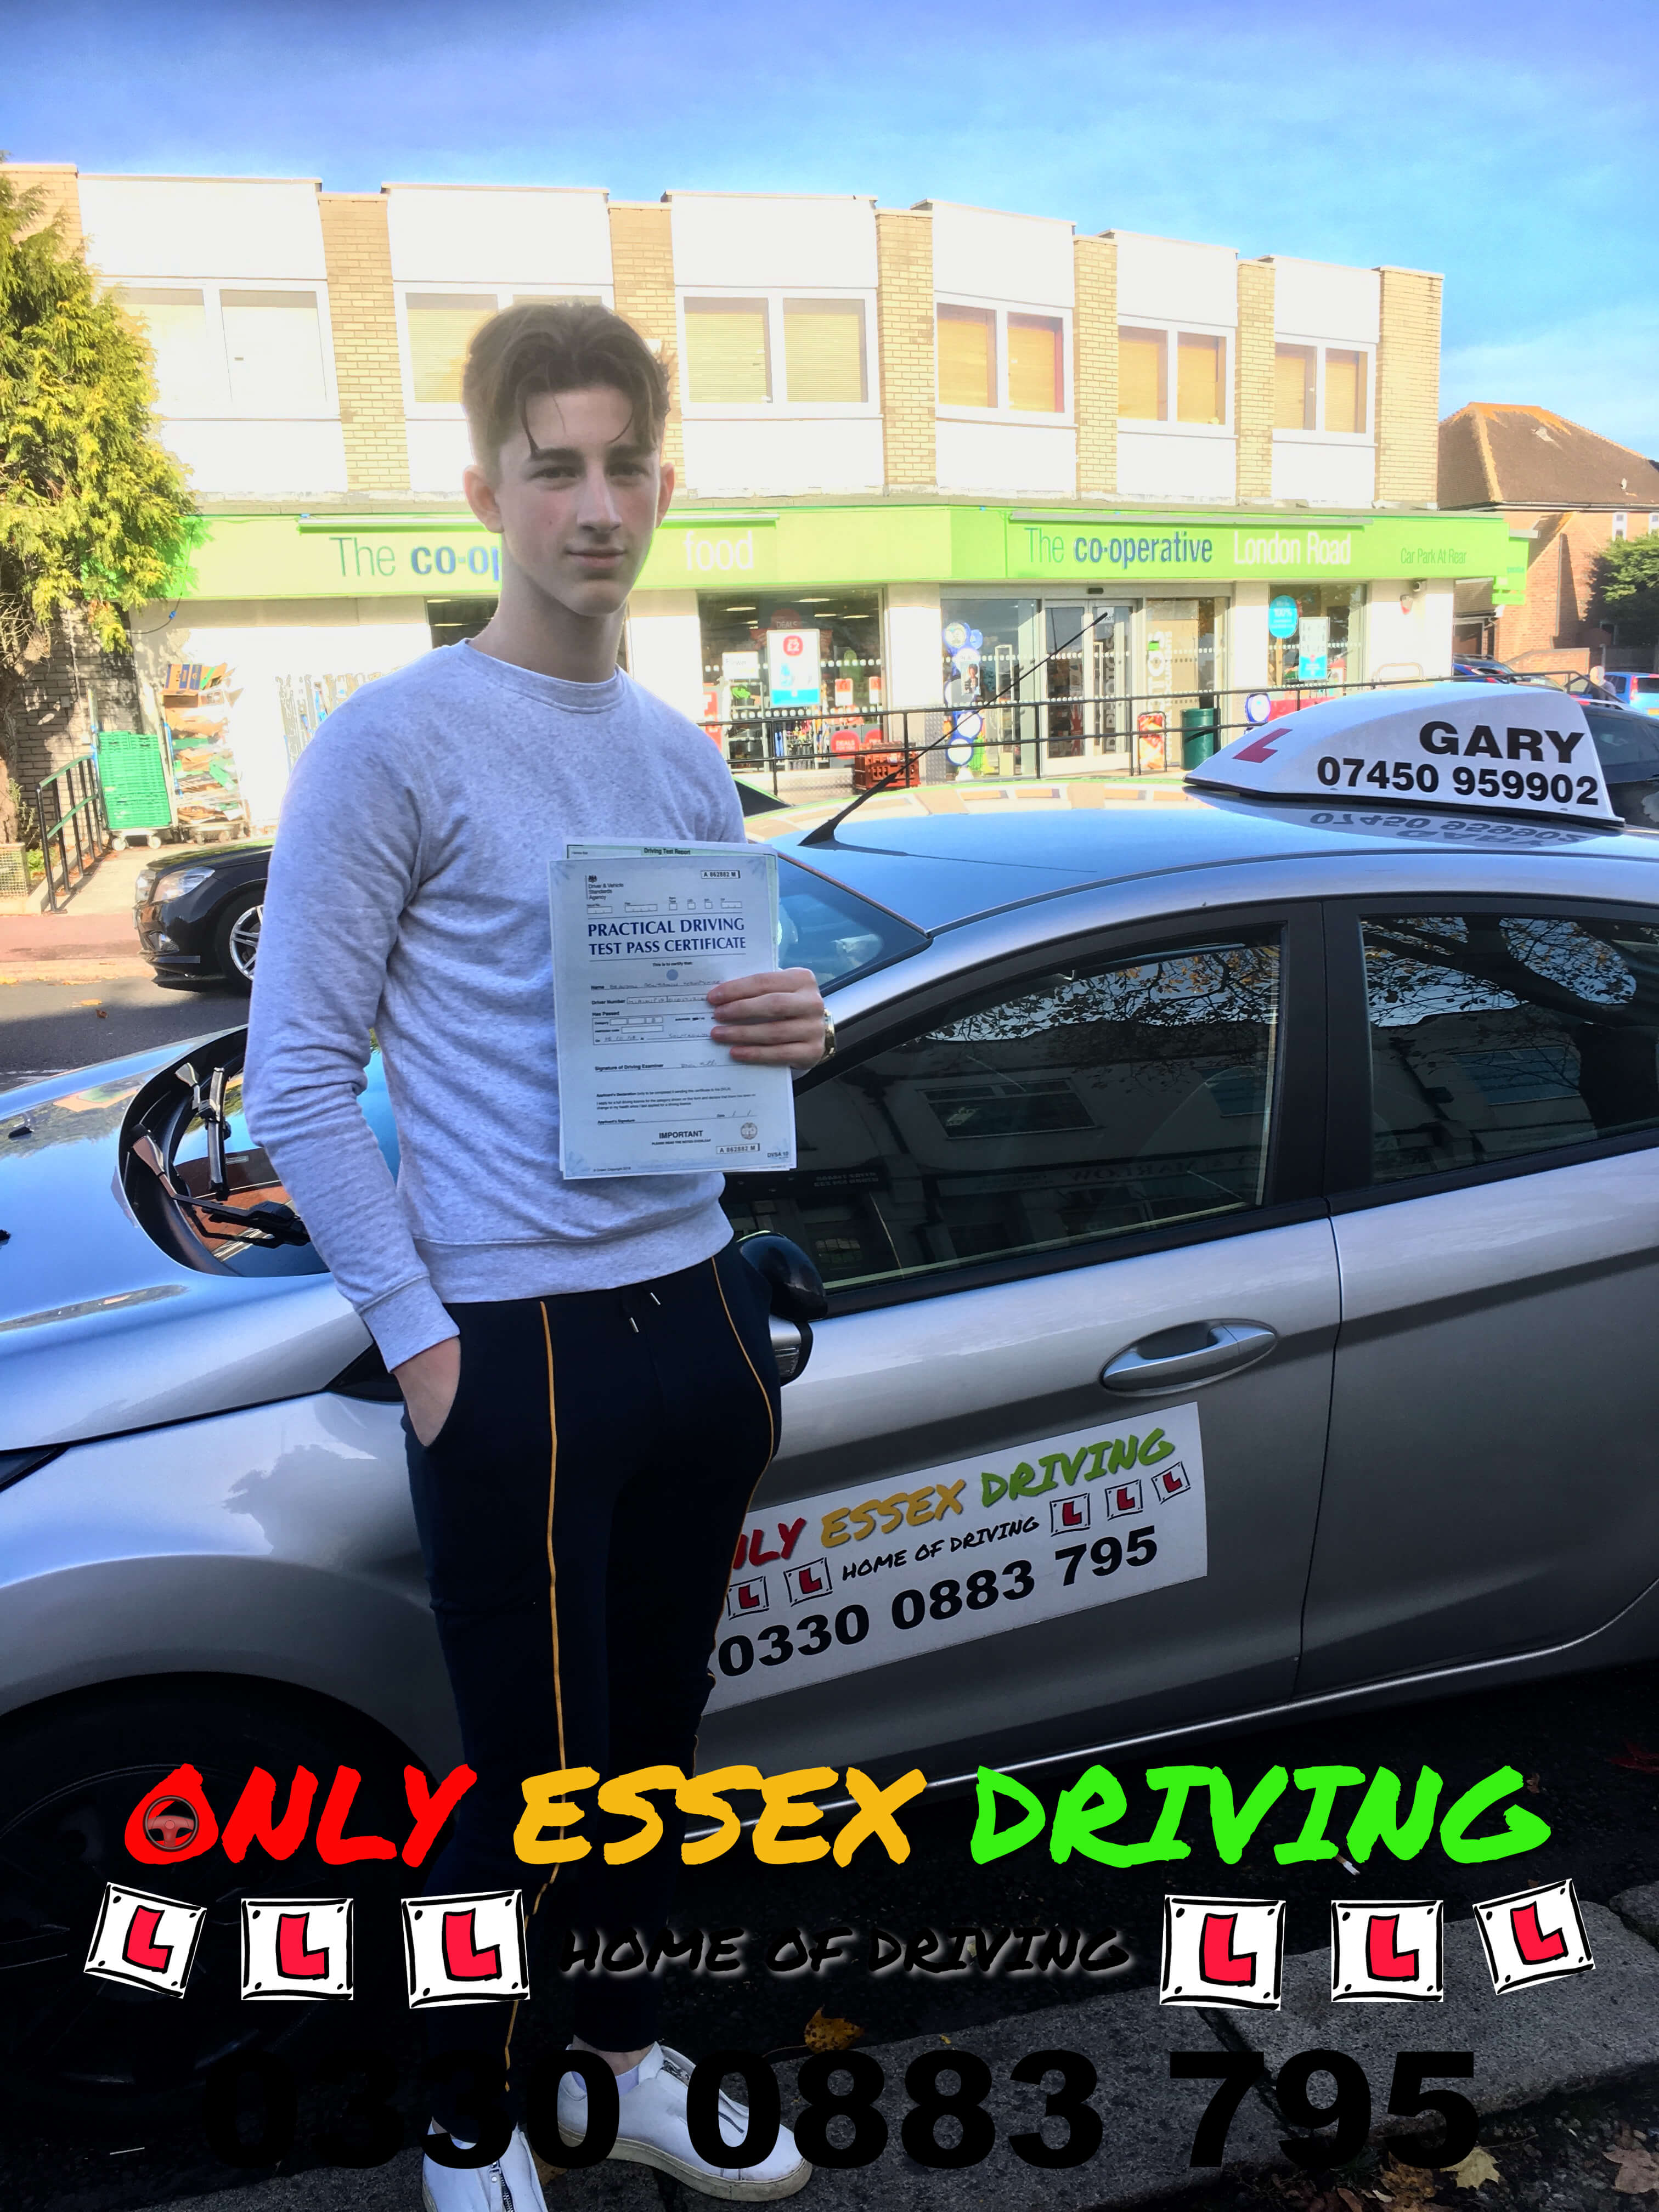 Well done to Brandon who passed his driving test at Southend test centre